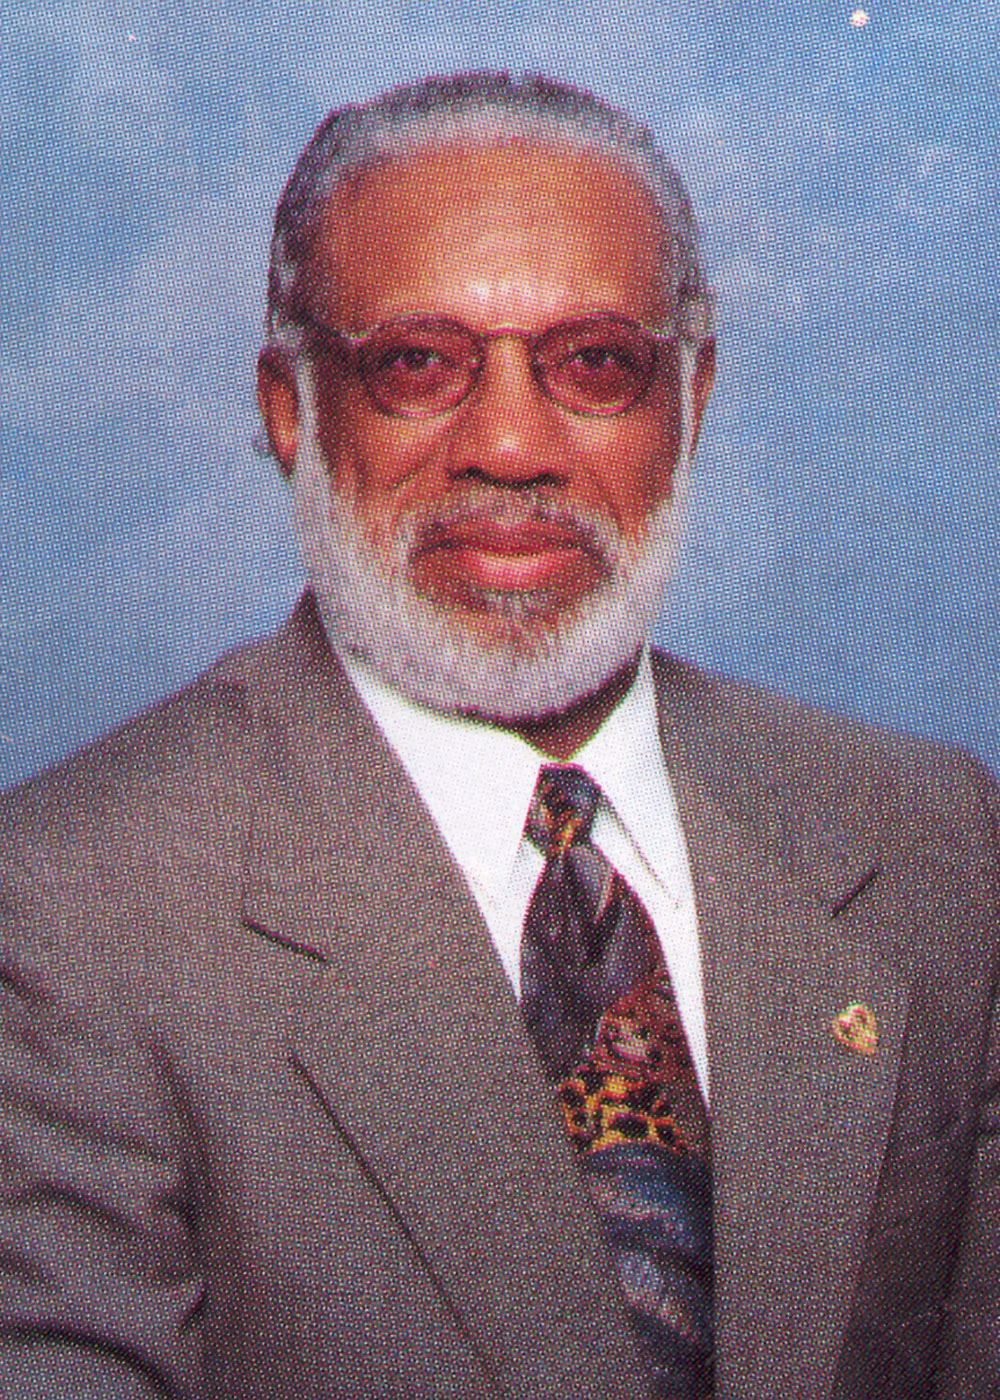 Rev. Eddie Thomas 2006 -2008